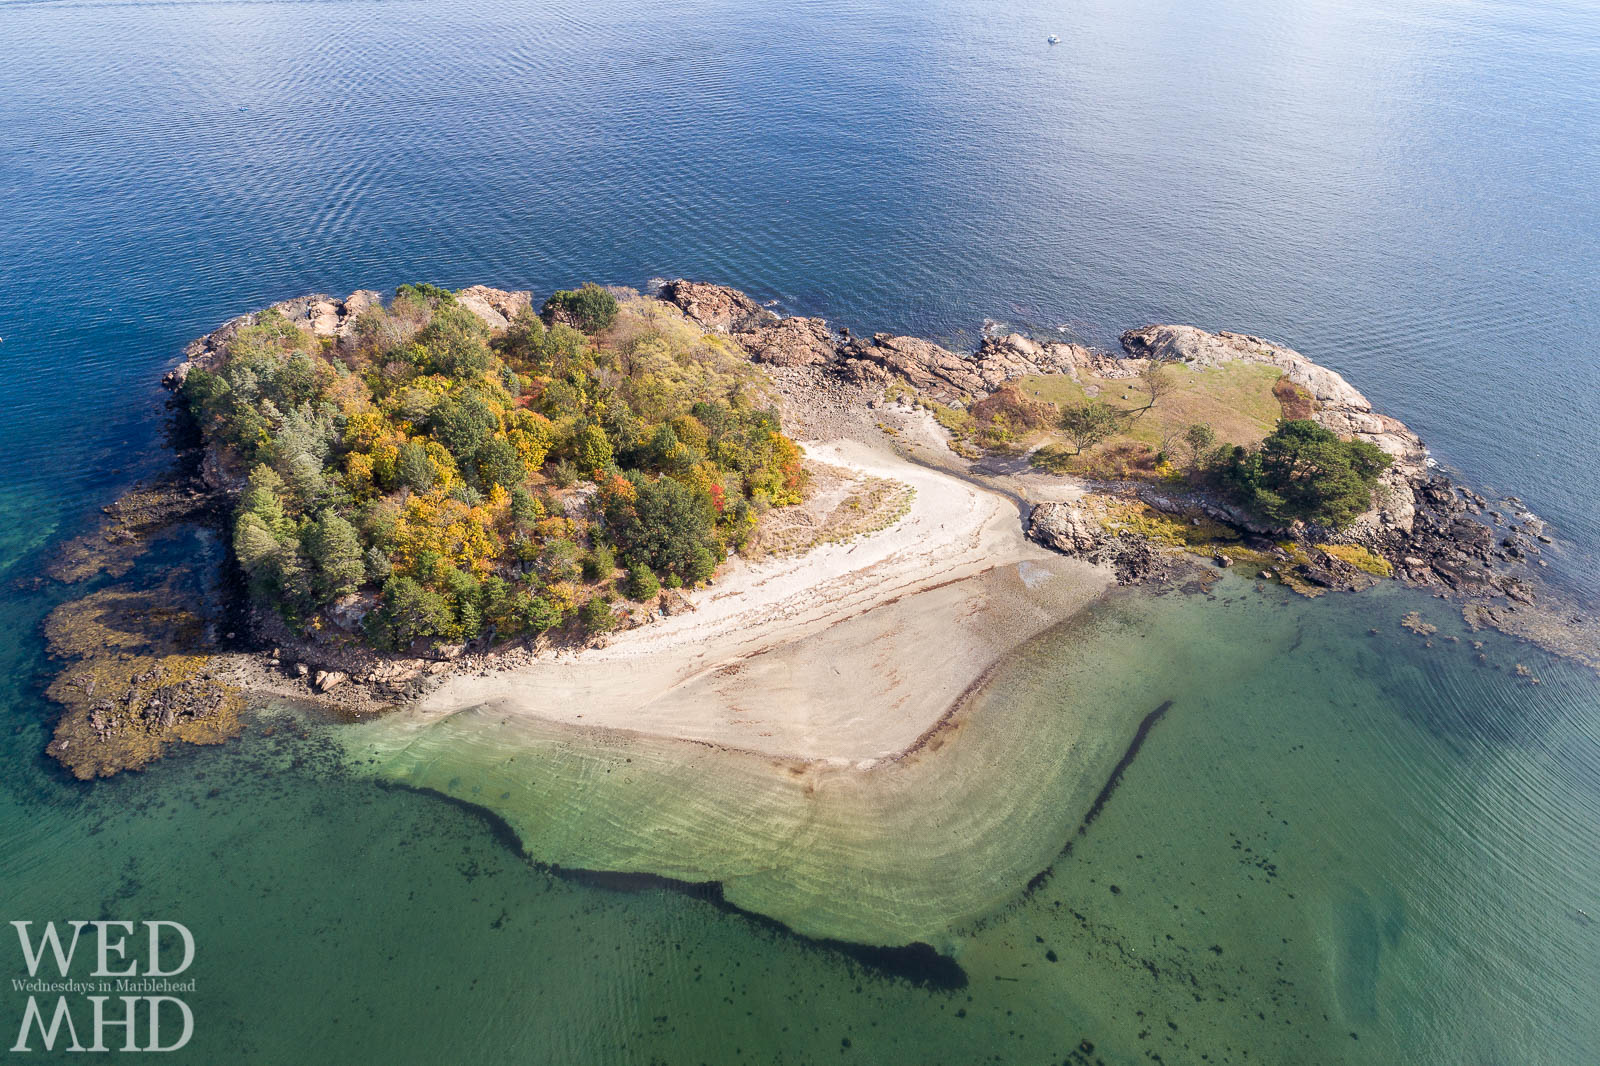 An overhead view of the beach at Brown's Island seen on a late October afternoon as leaves show shades of fall color